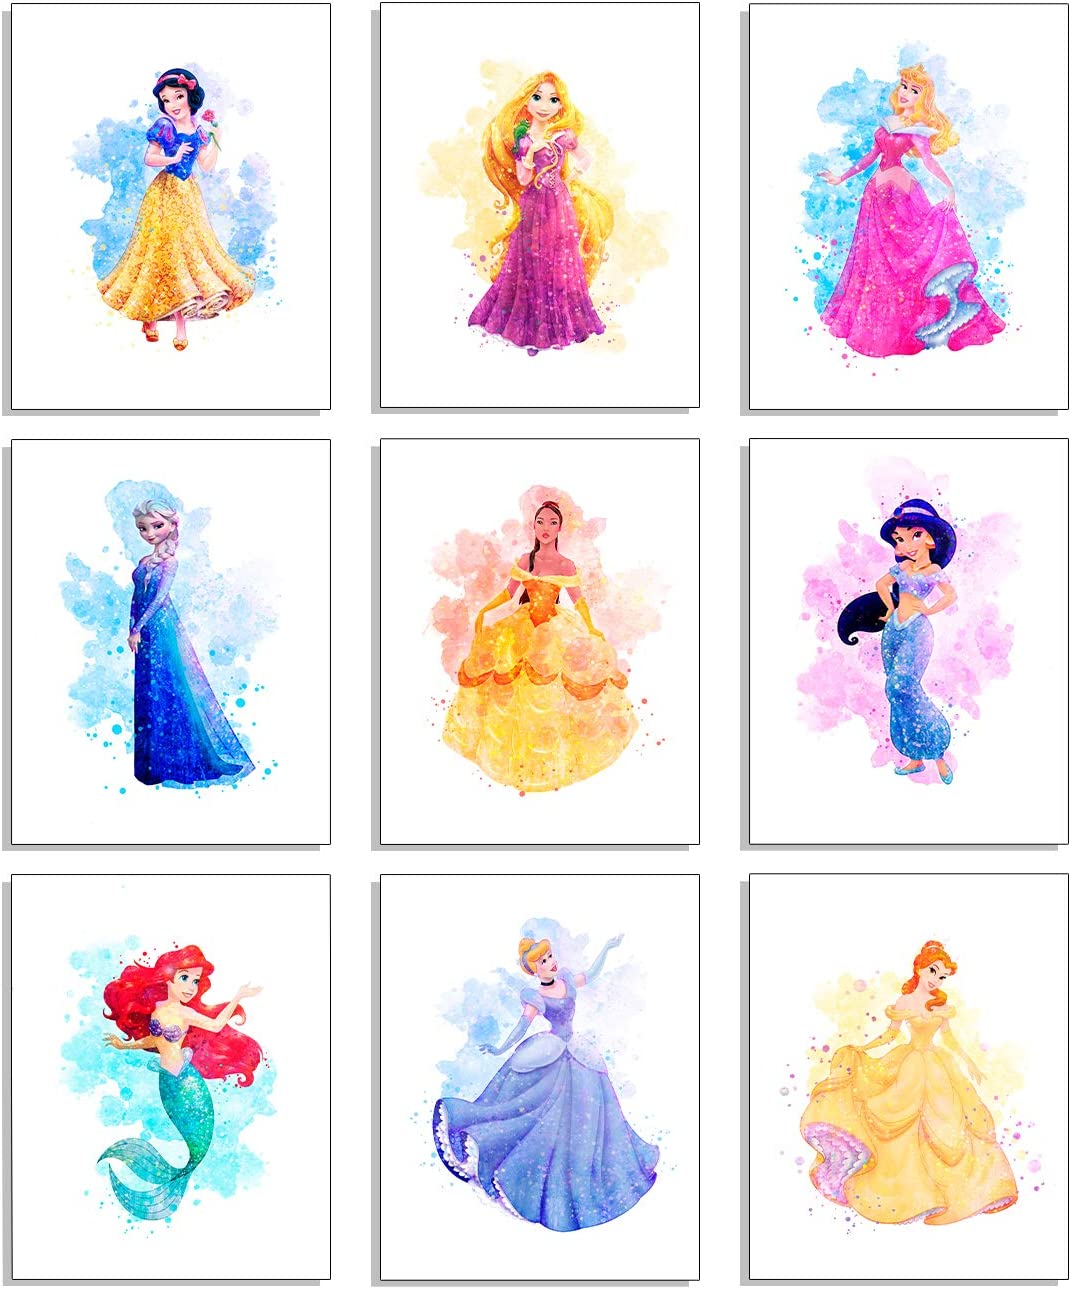 Princess Wall Art Decor Watercolor Prints - Unframed Set Of 9 (8 Inches X 10 Inches) - Princess Bedroom Decor, Princess Room Decor, Princess Wall Decor For Girls Bedroom